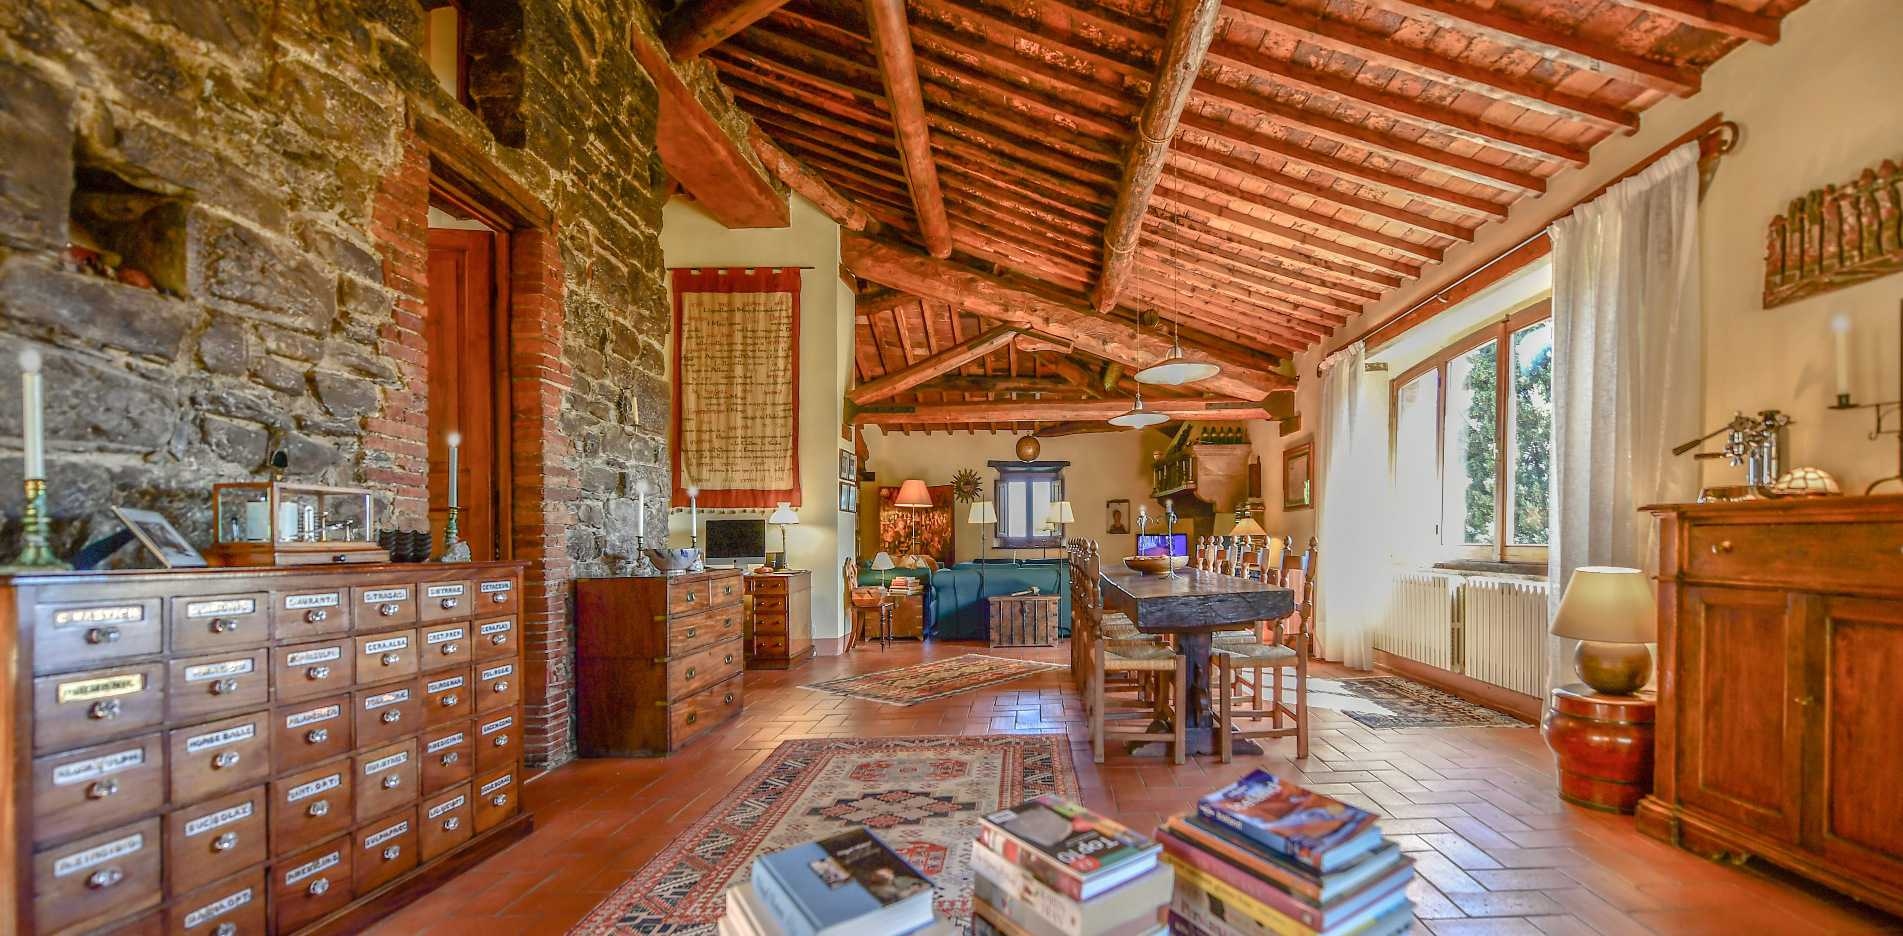 FARMHOUSE FOR SALE IN AREZZO, TUSCANY